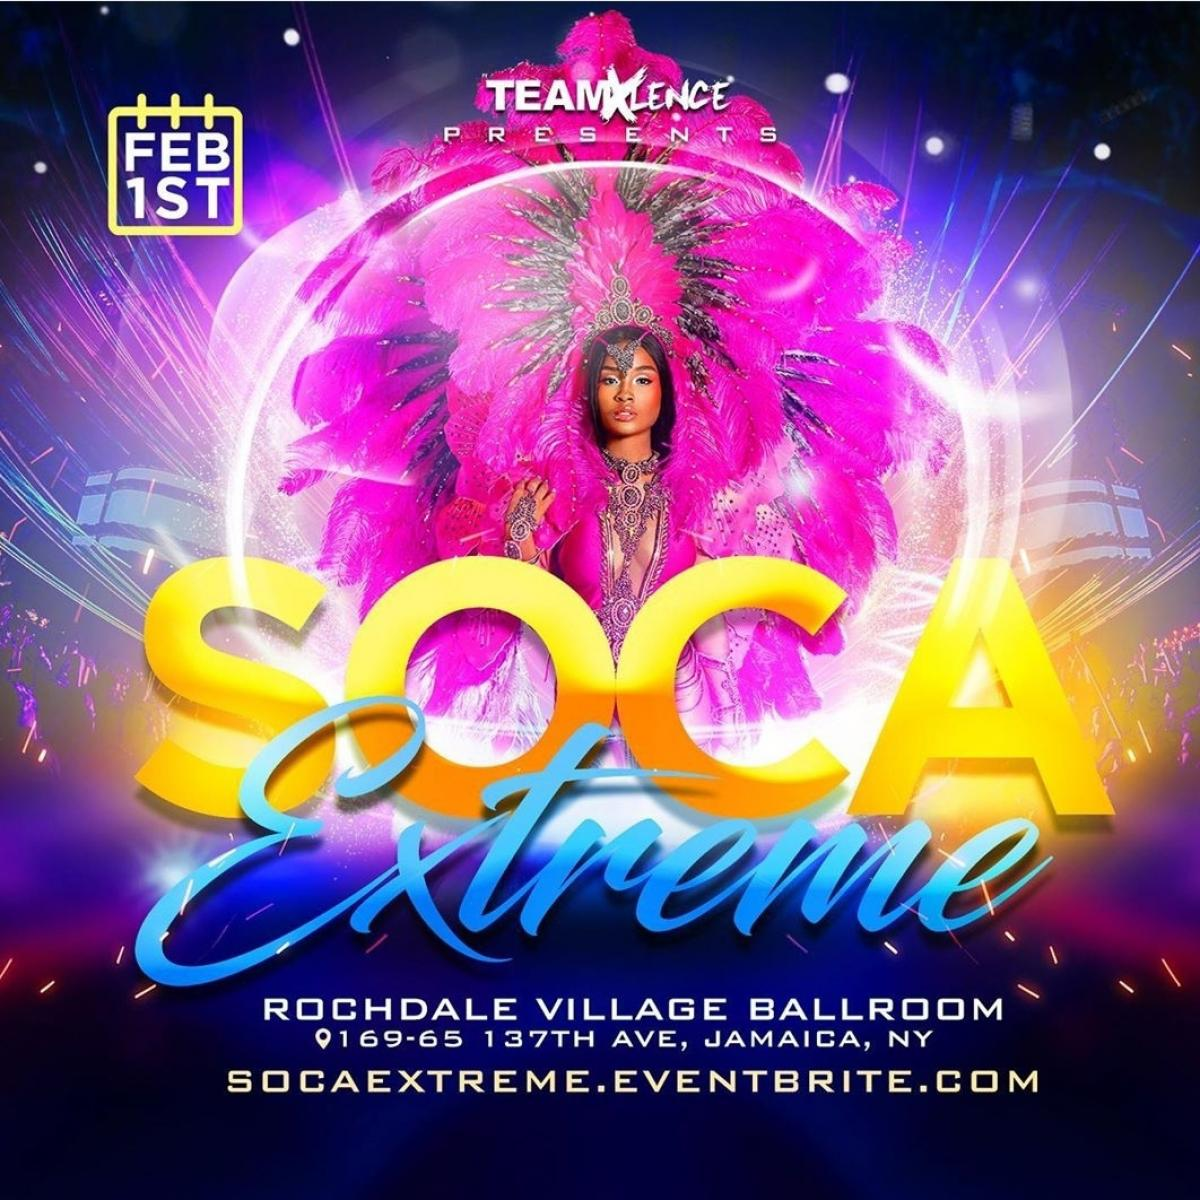 Soca Extreme flyer or graphic.